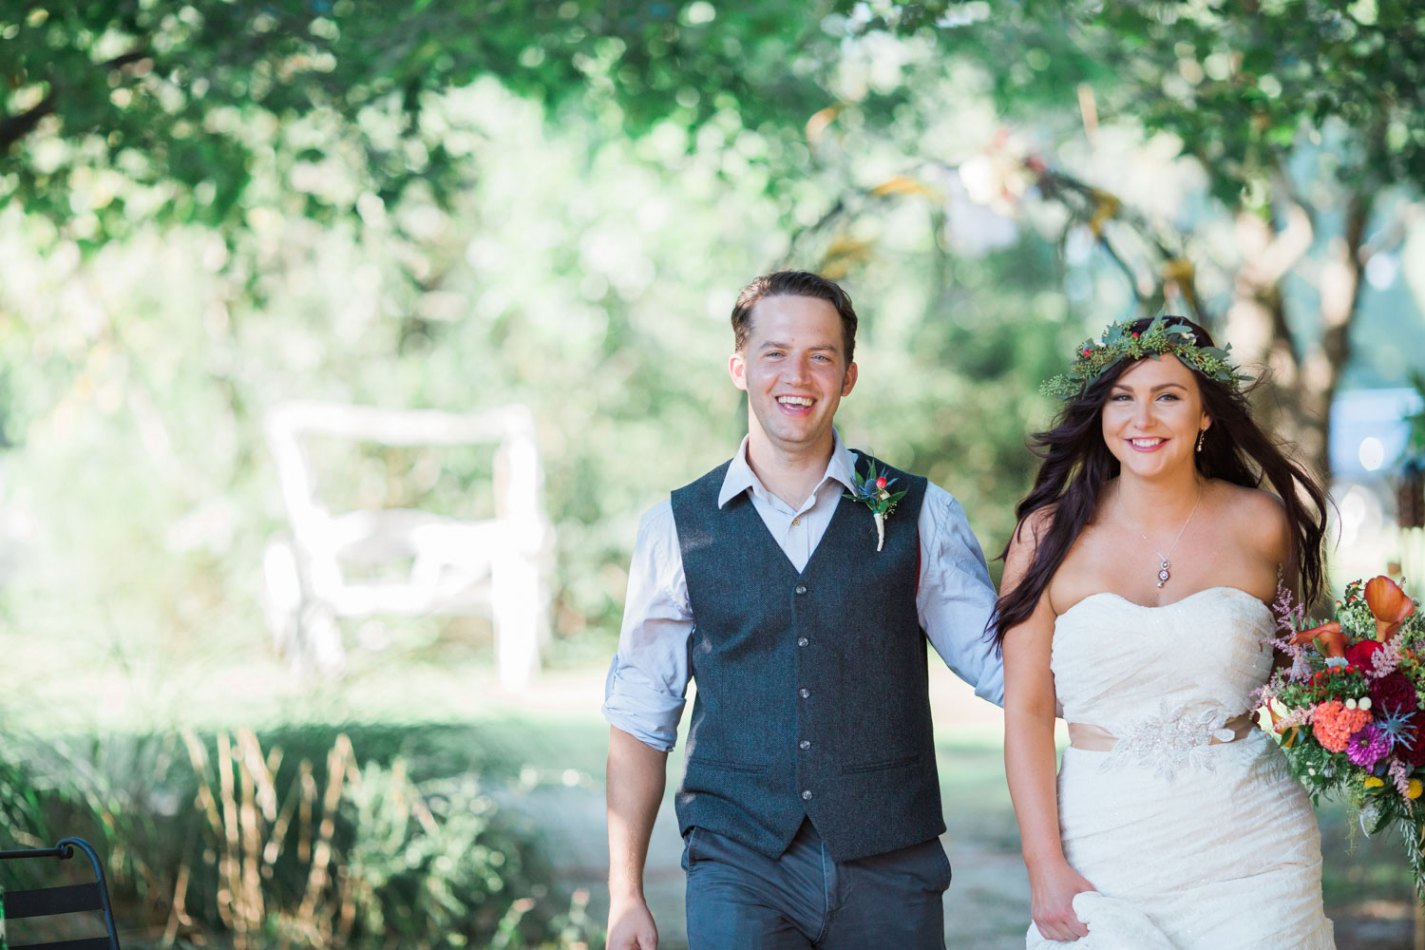 a bride wearing a wreath of flowers on her head and carrying her bouquet walks with her new husband, who has taken his jacket off and rolled up his sleeves